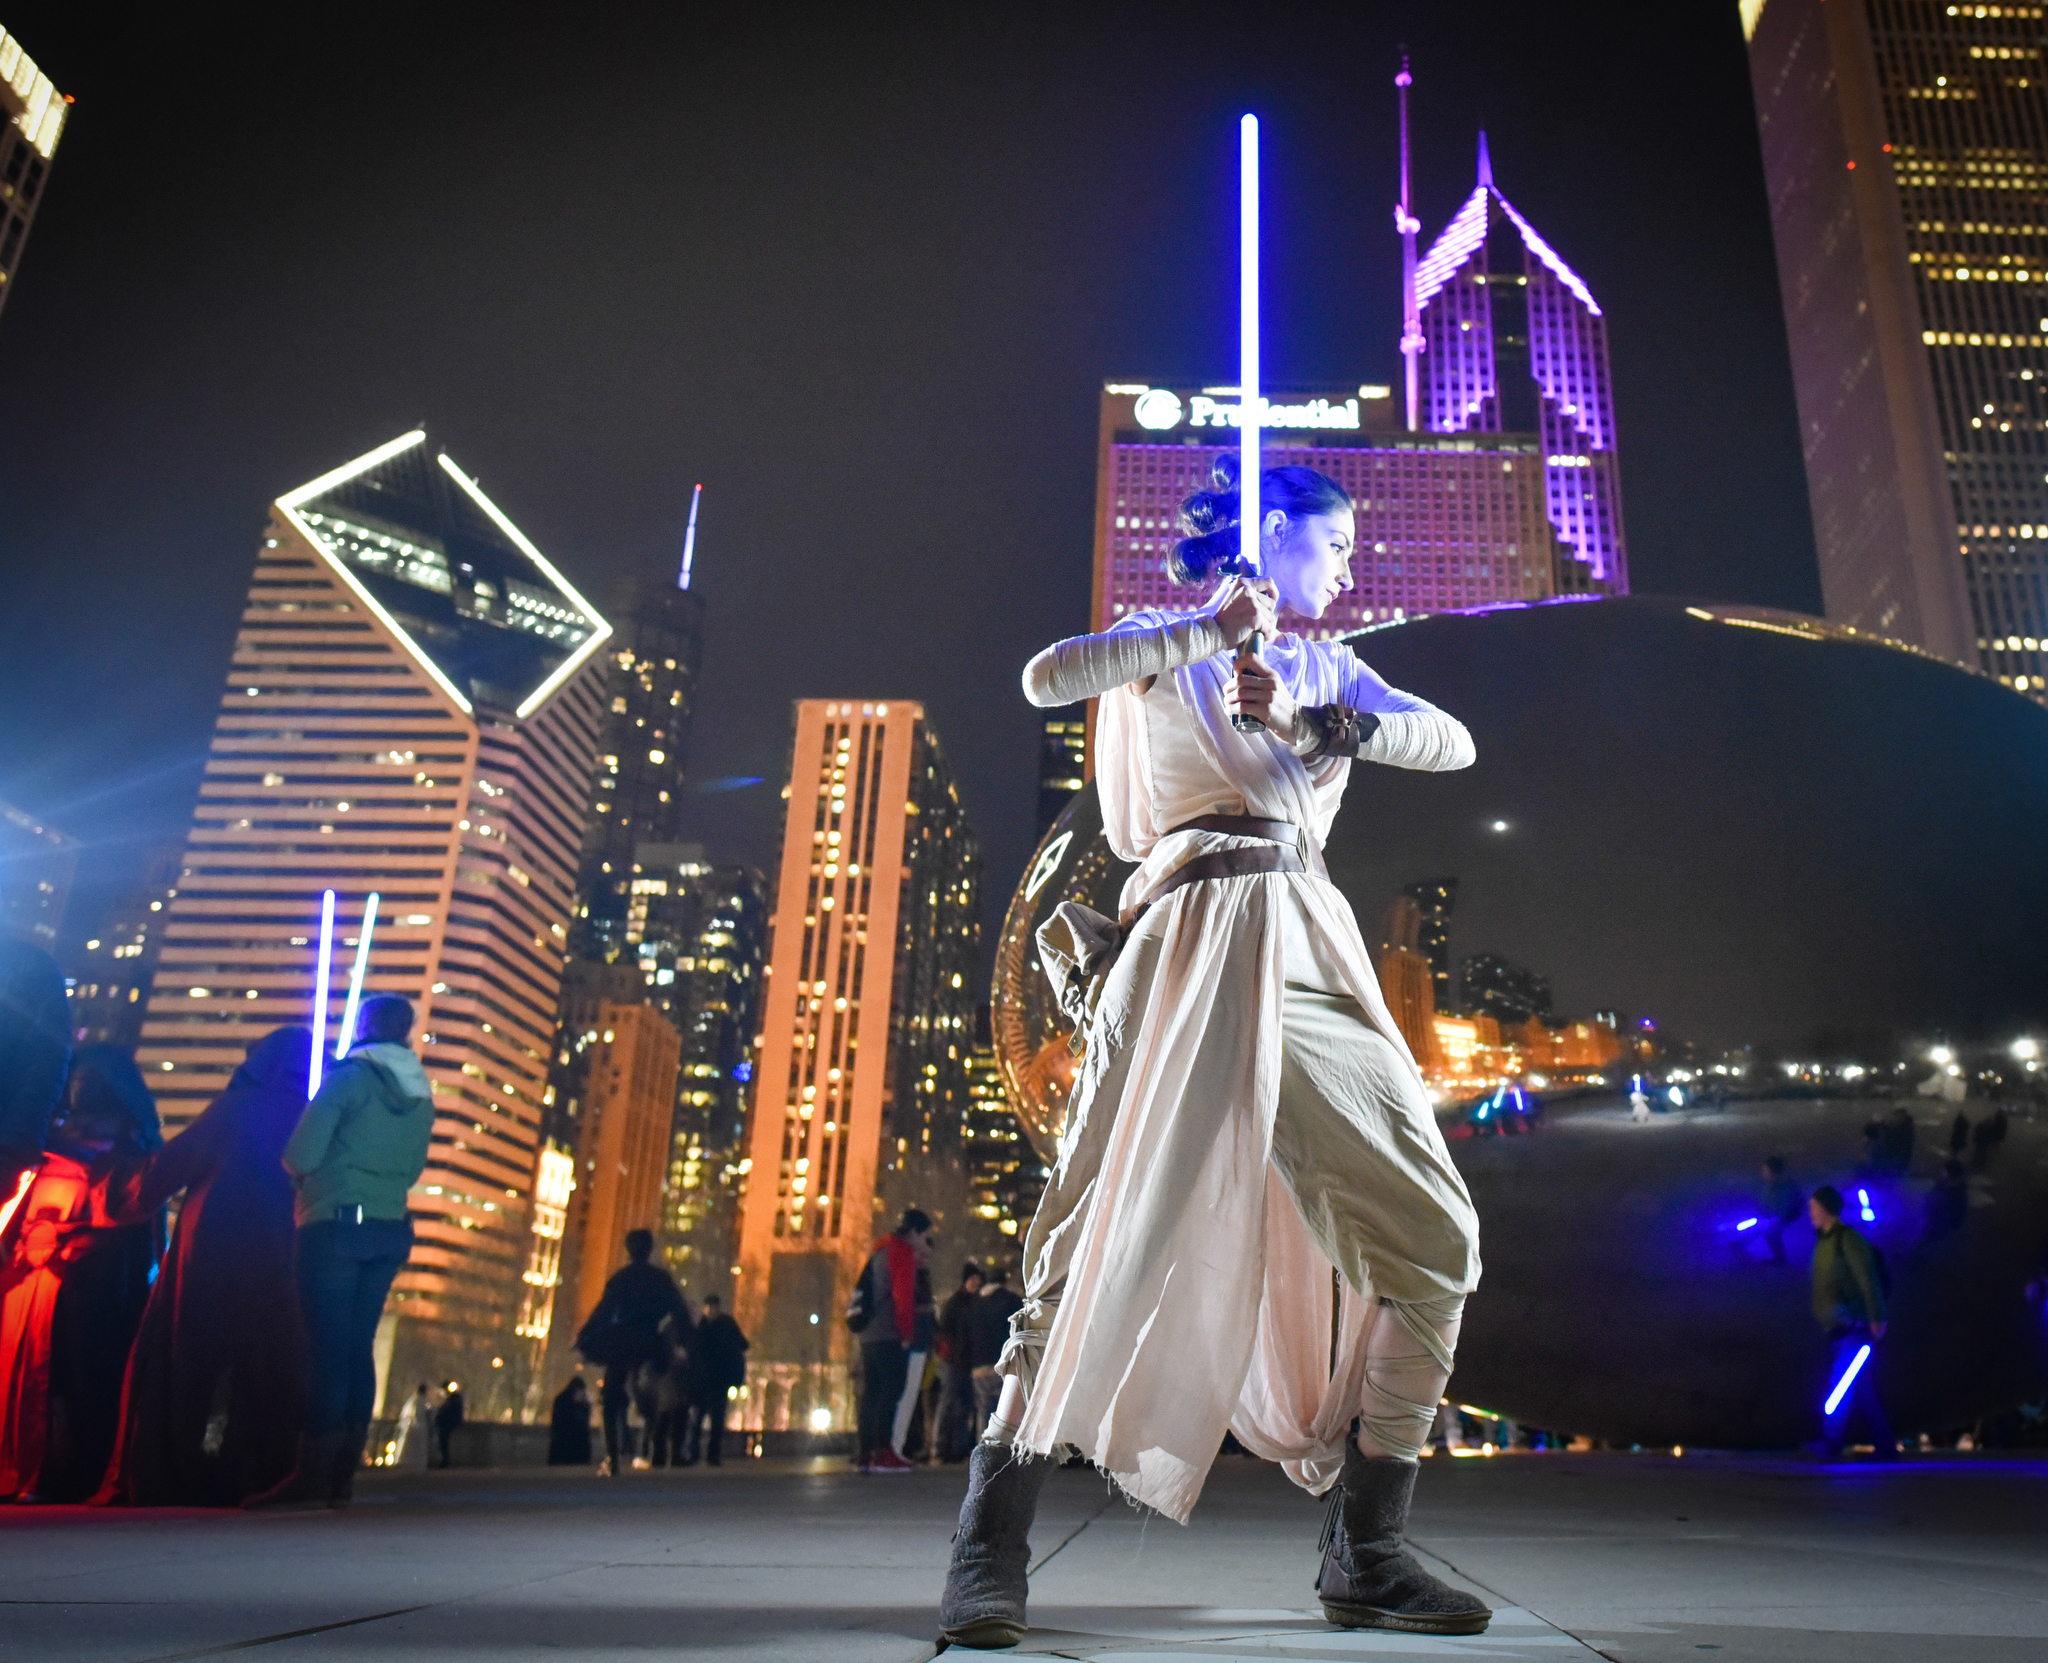 2019.04.14 - Star Wars Celebration Chicago 288896.JPG